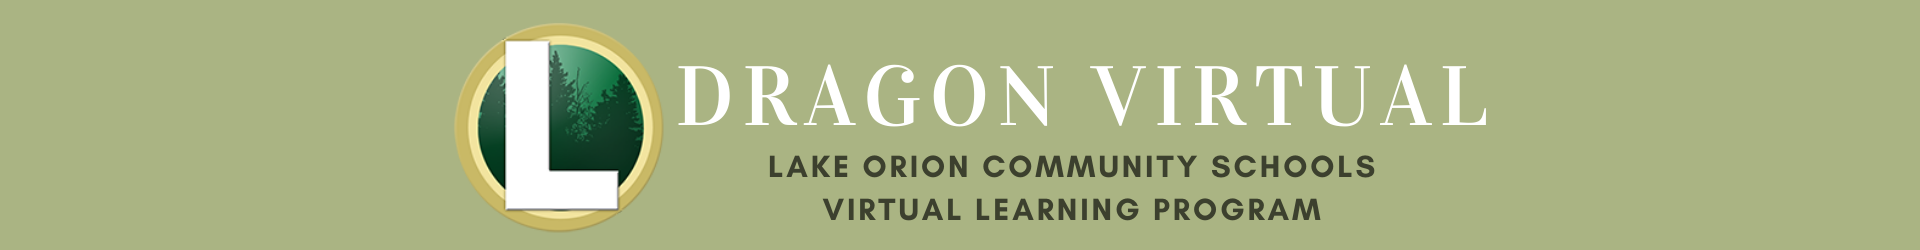 Dragon virtual